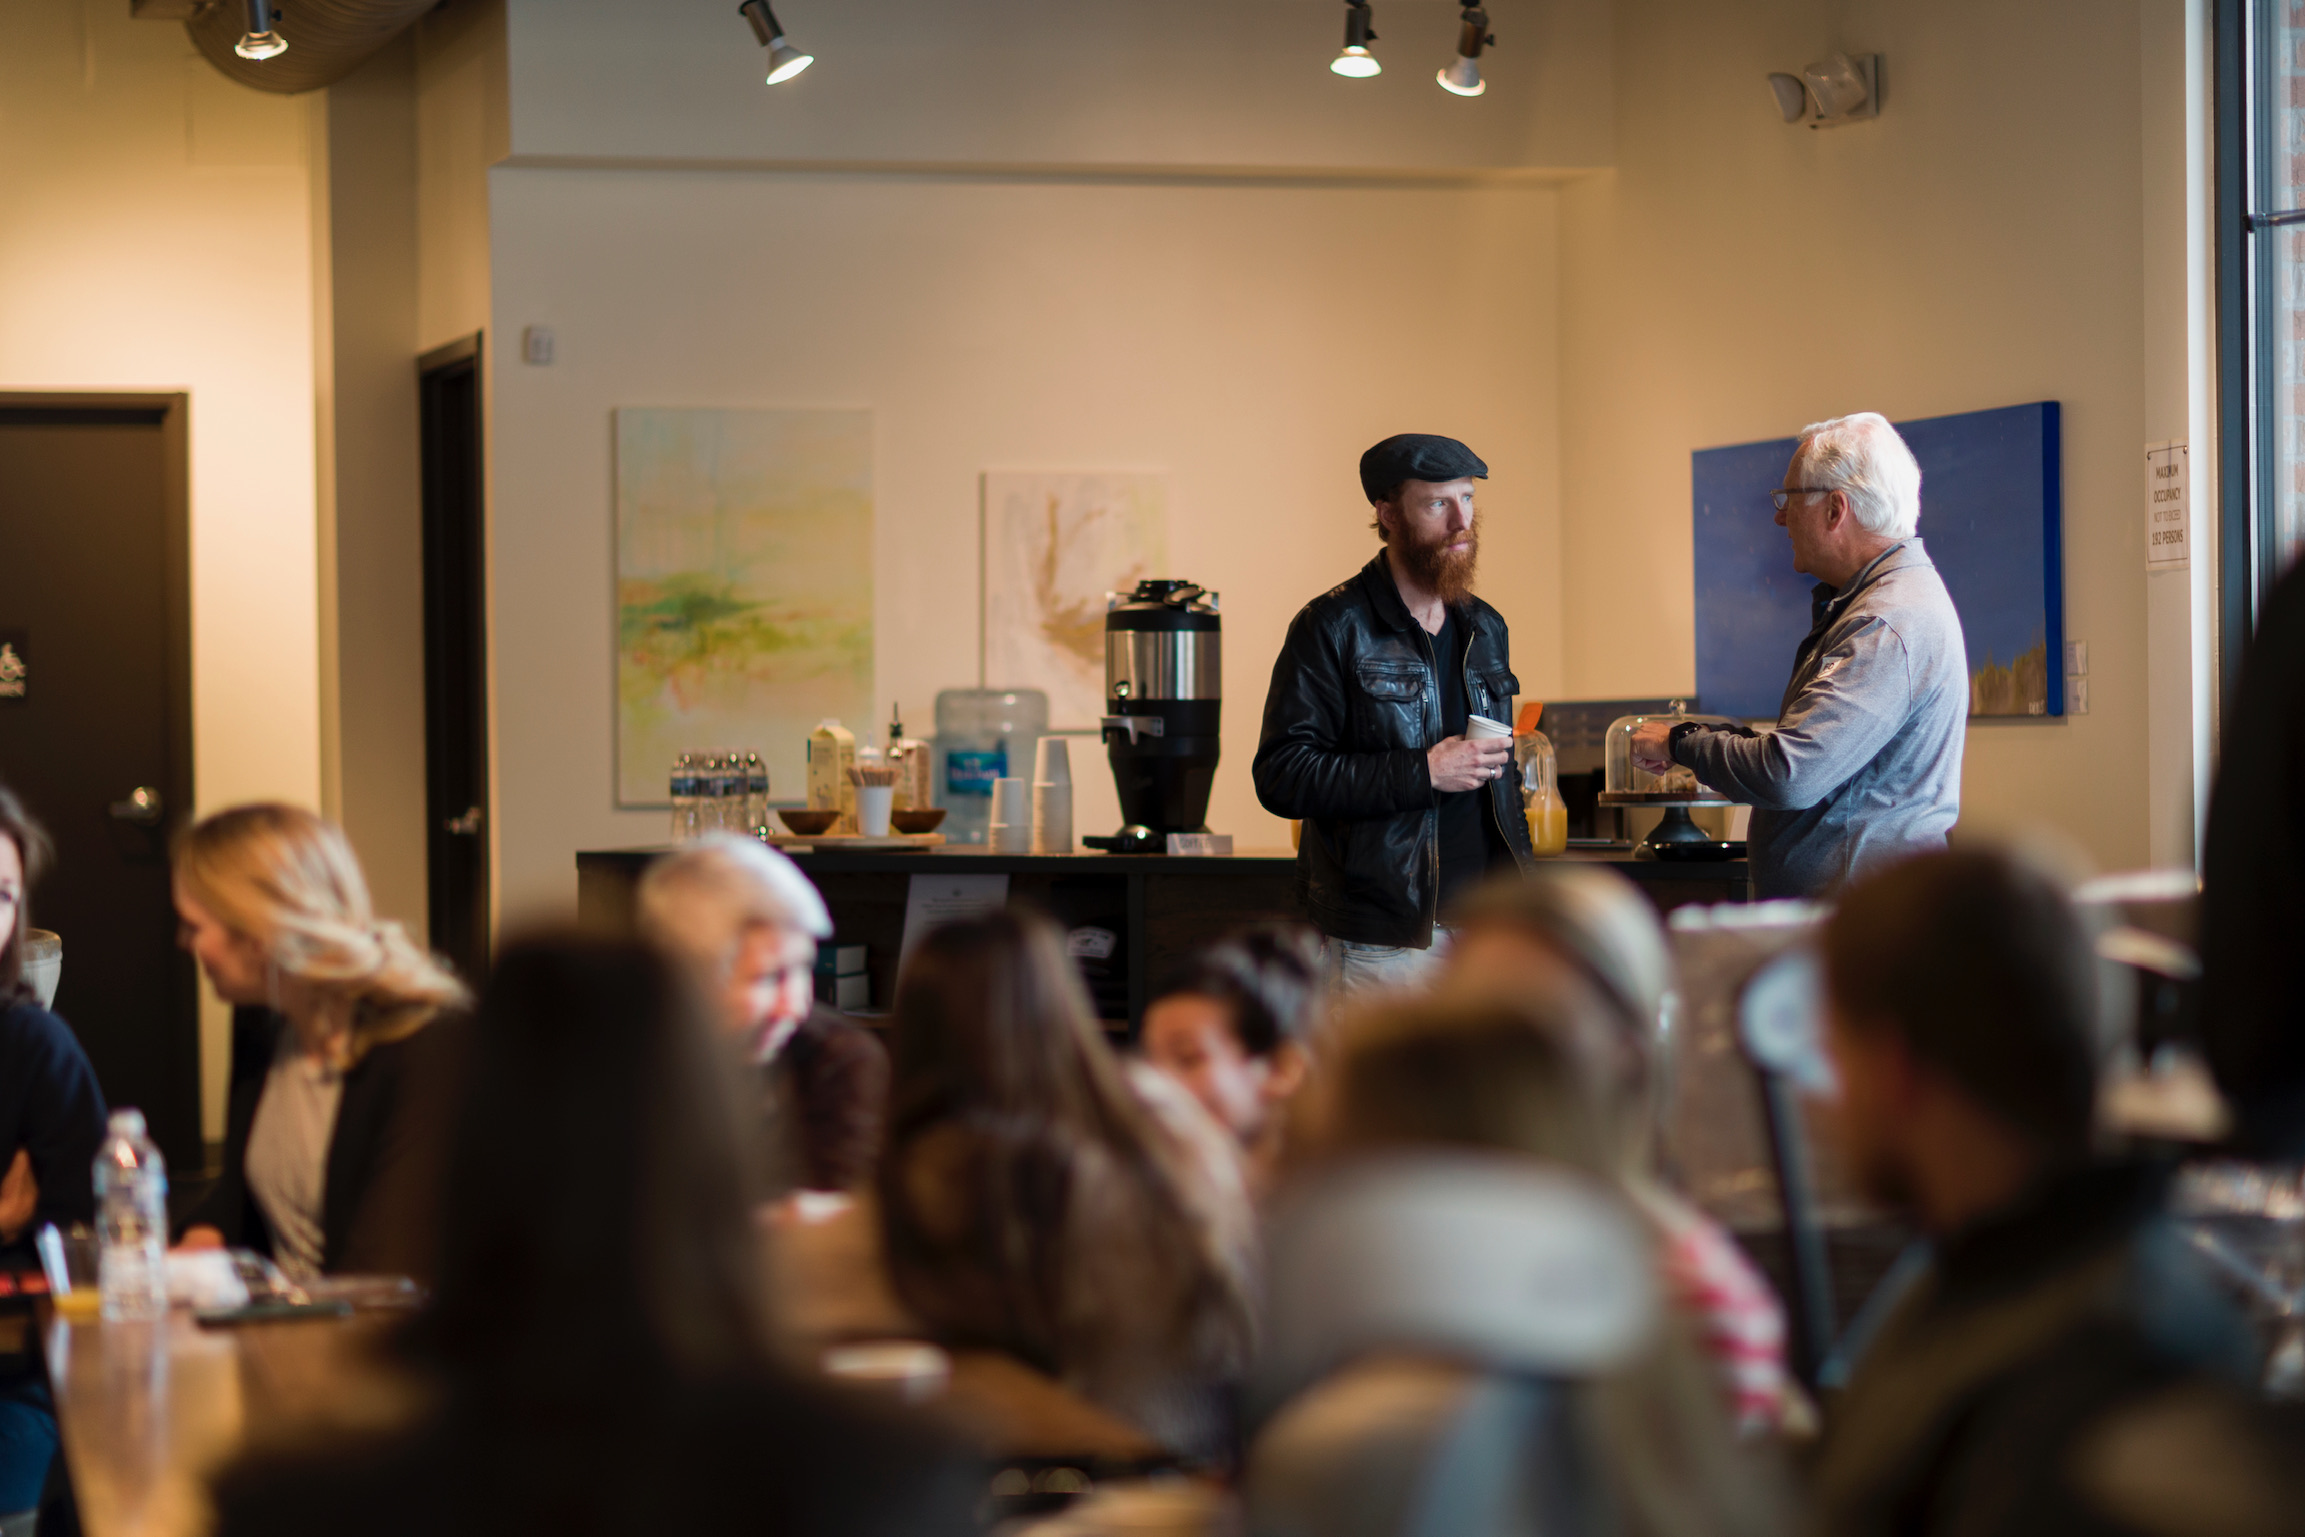 Coffee - Sip on a variety of local roasts to our standard drip coffee, we're never short on caffeine